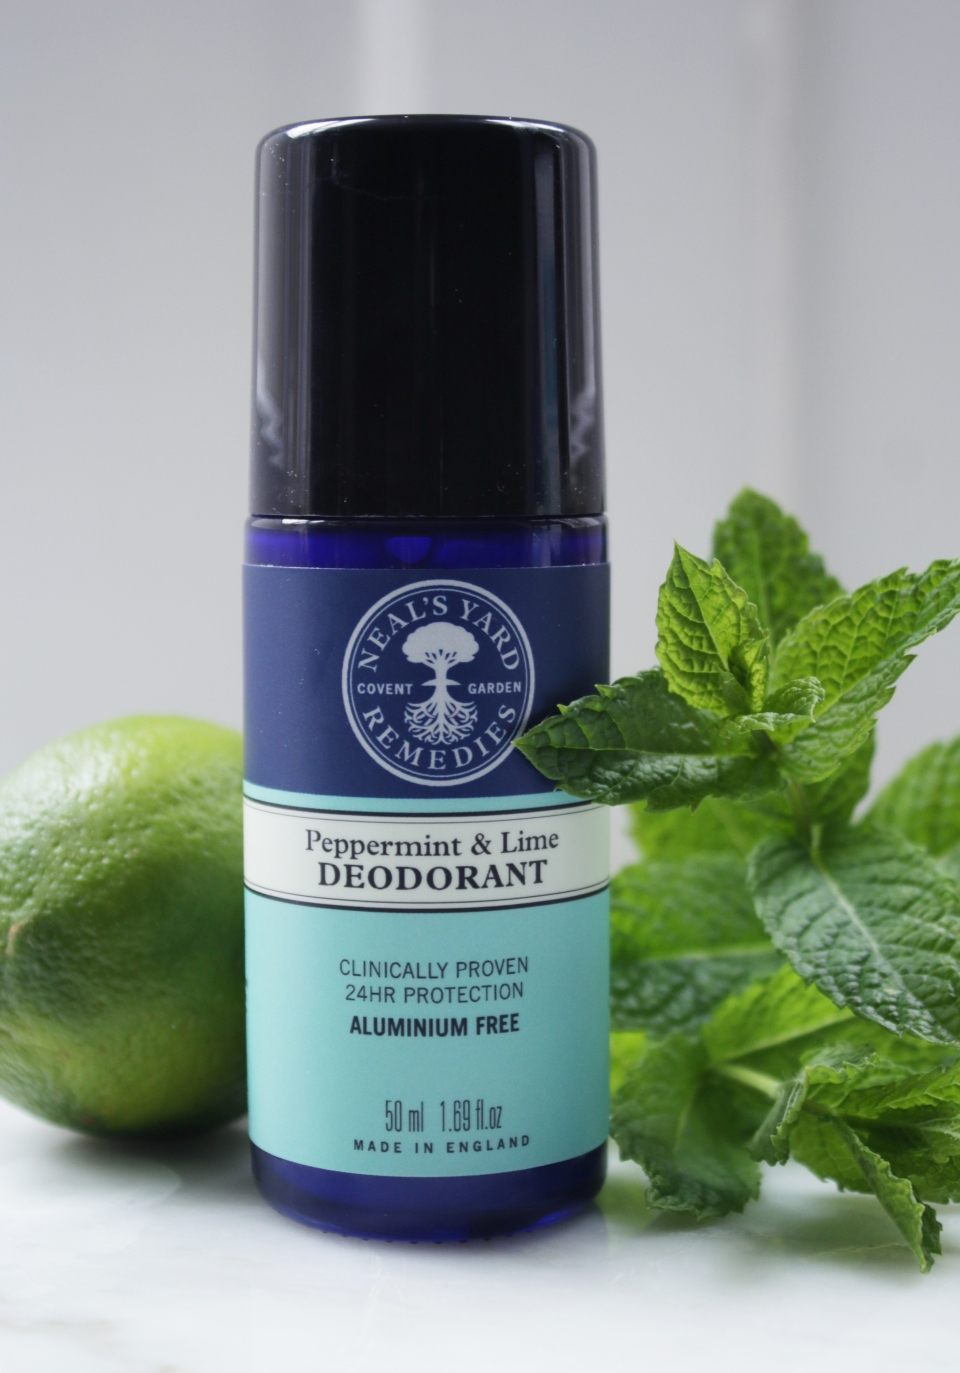 Neal's Yard Remedies peppermint and lime deodorant review